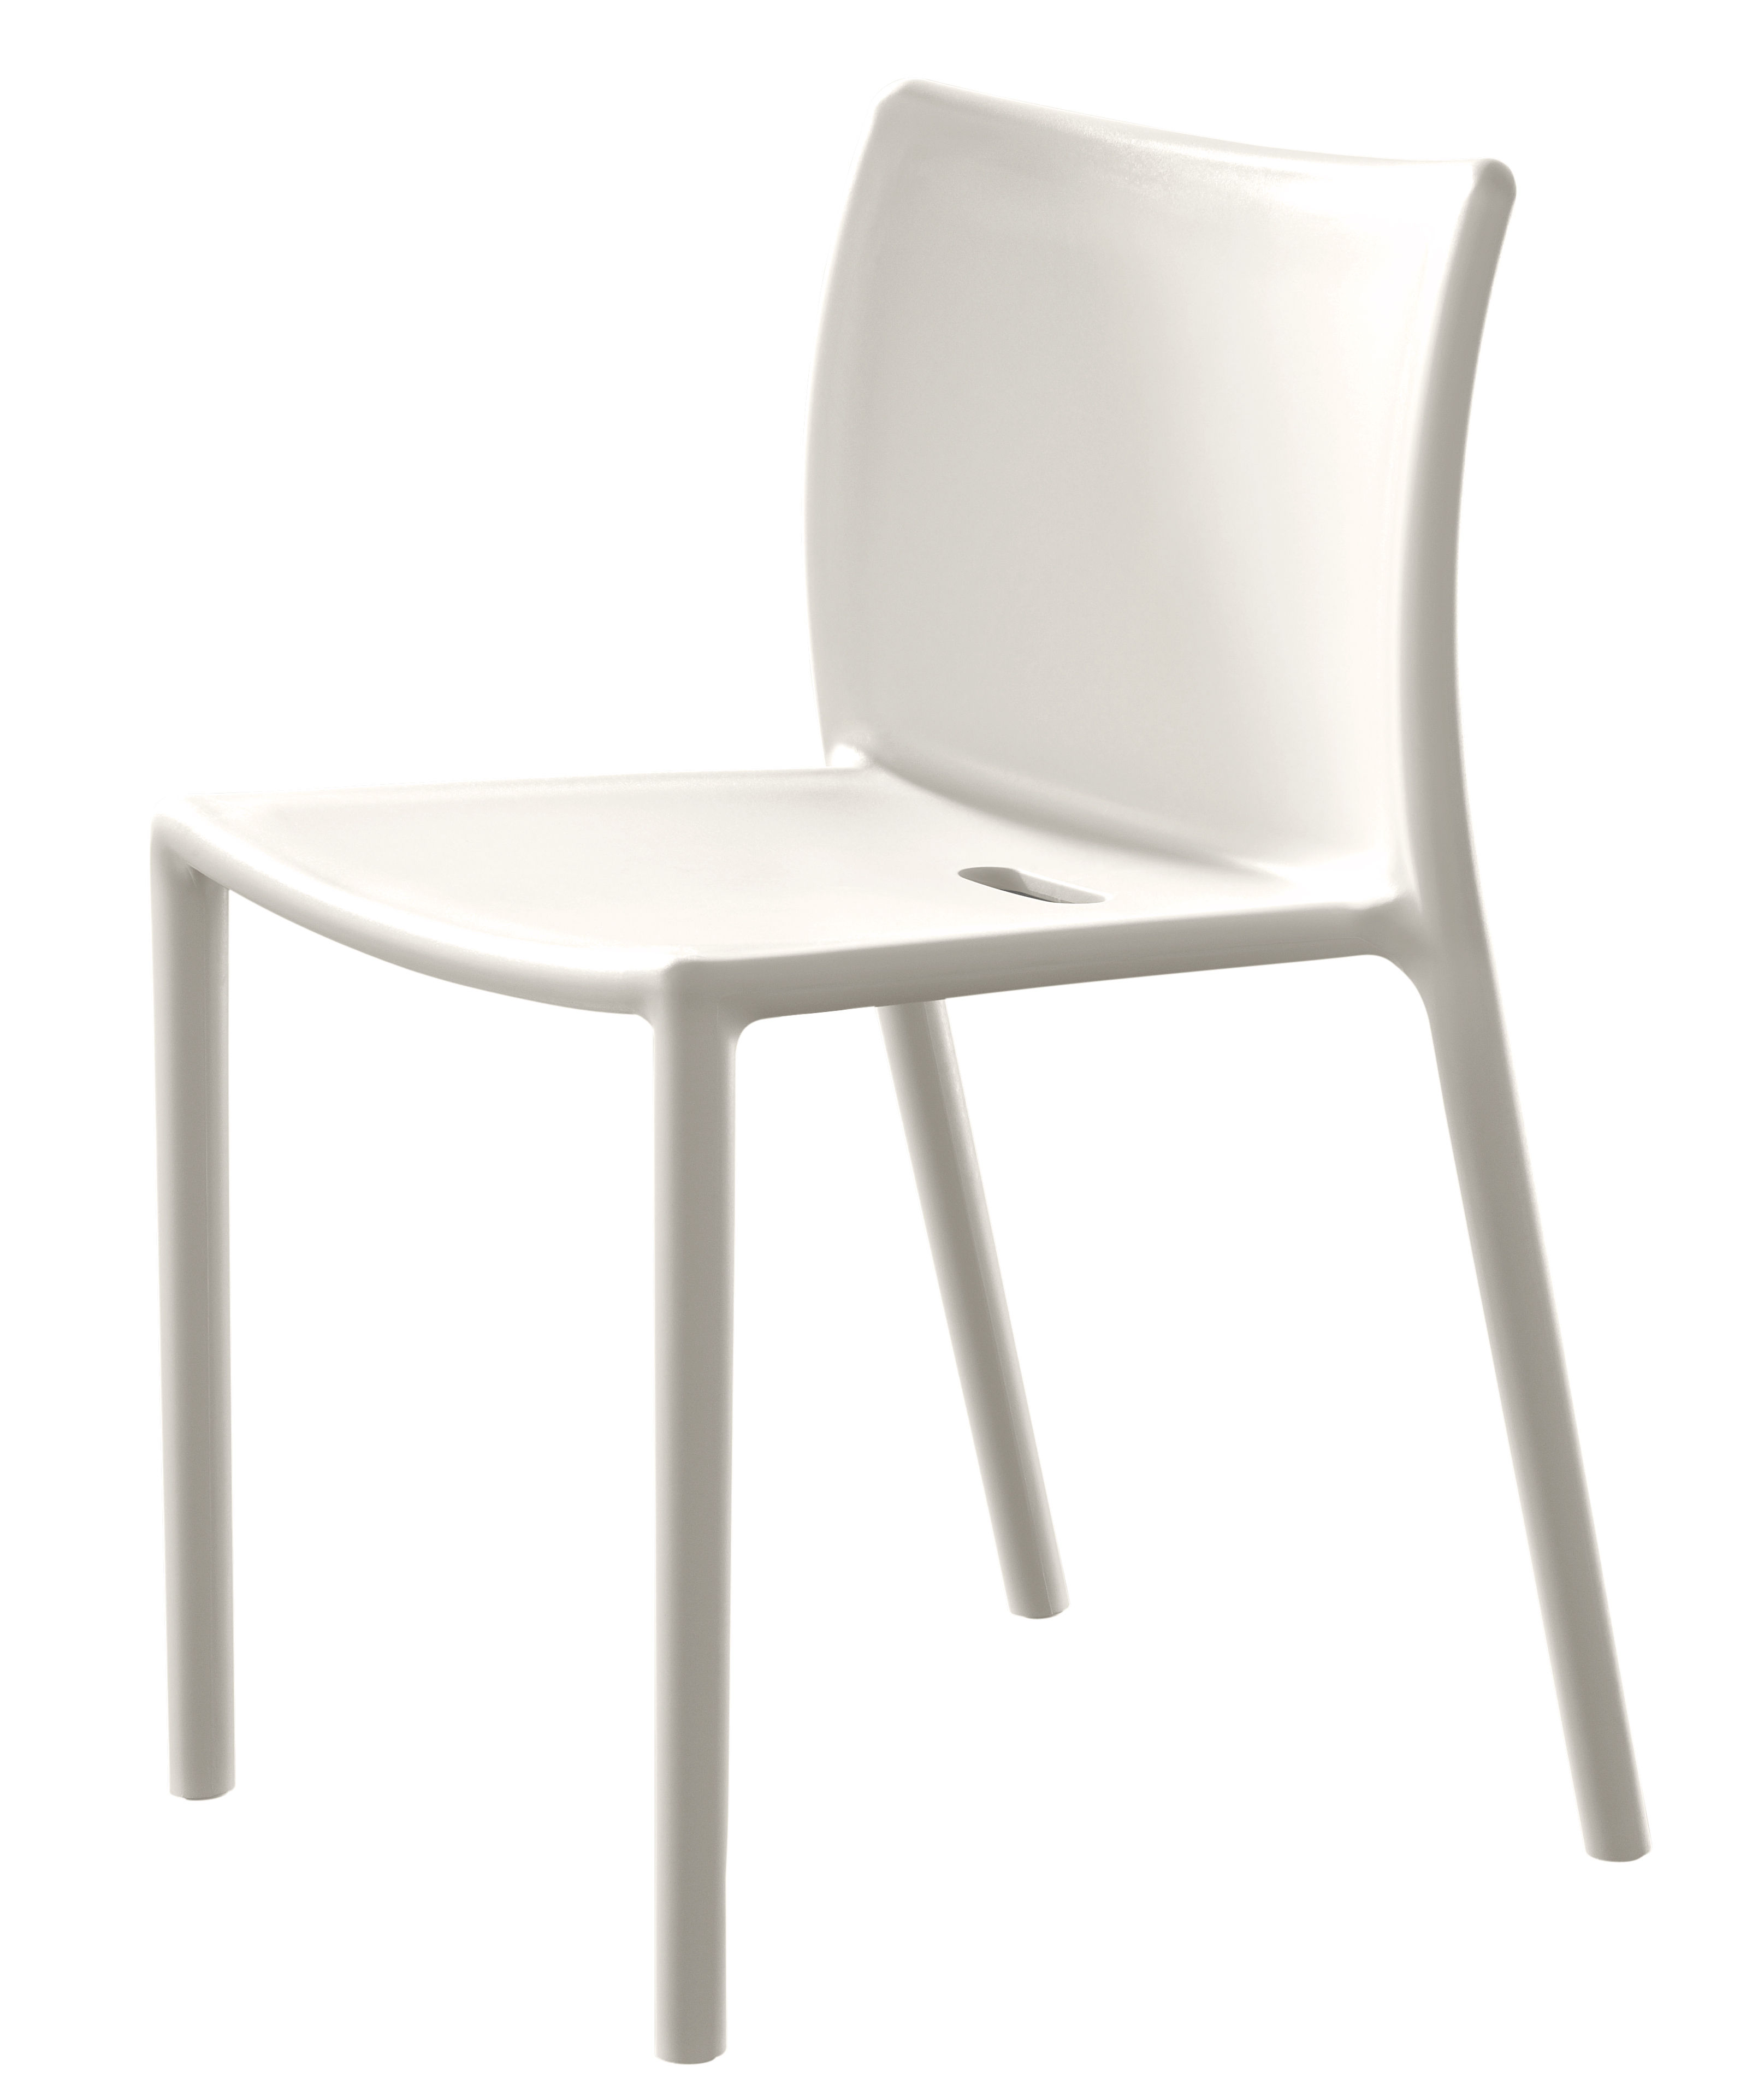 Air chair stackable chair polypropylene white by magis - Chaise blanche cuisine ...